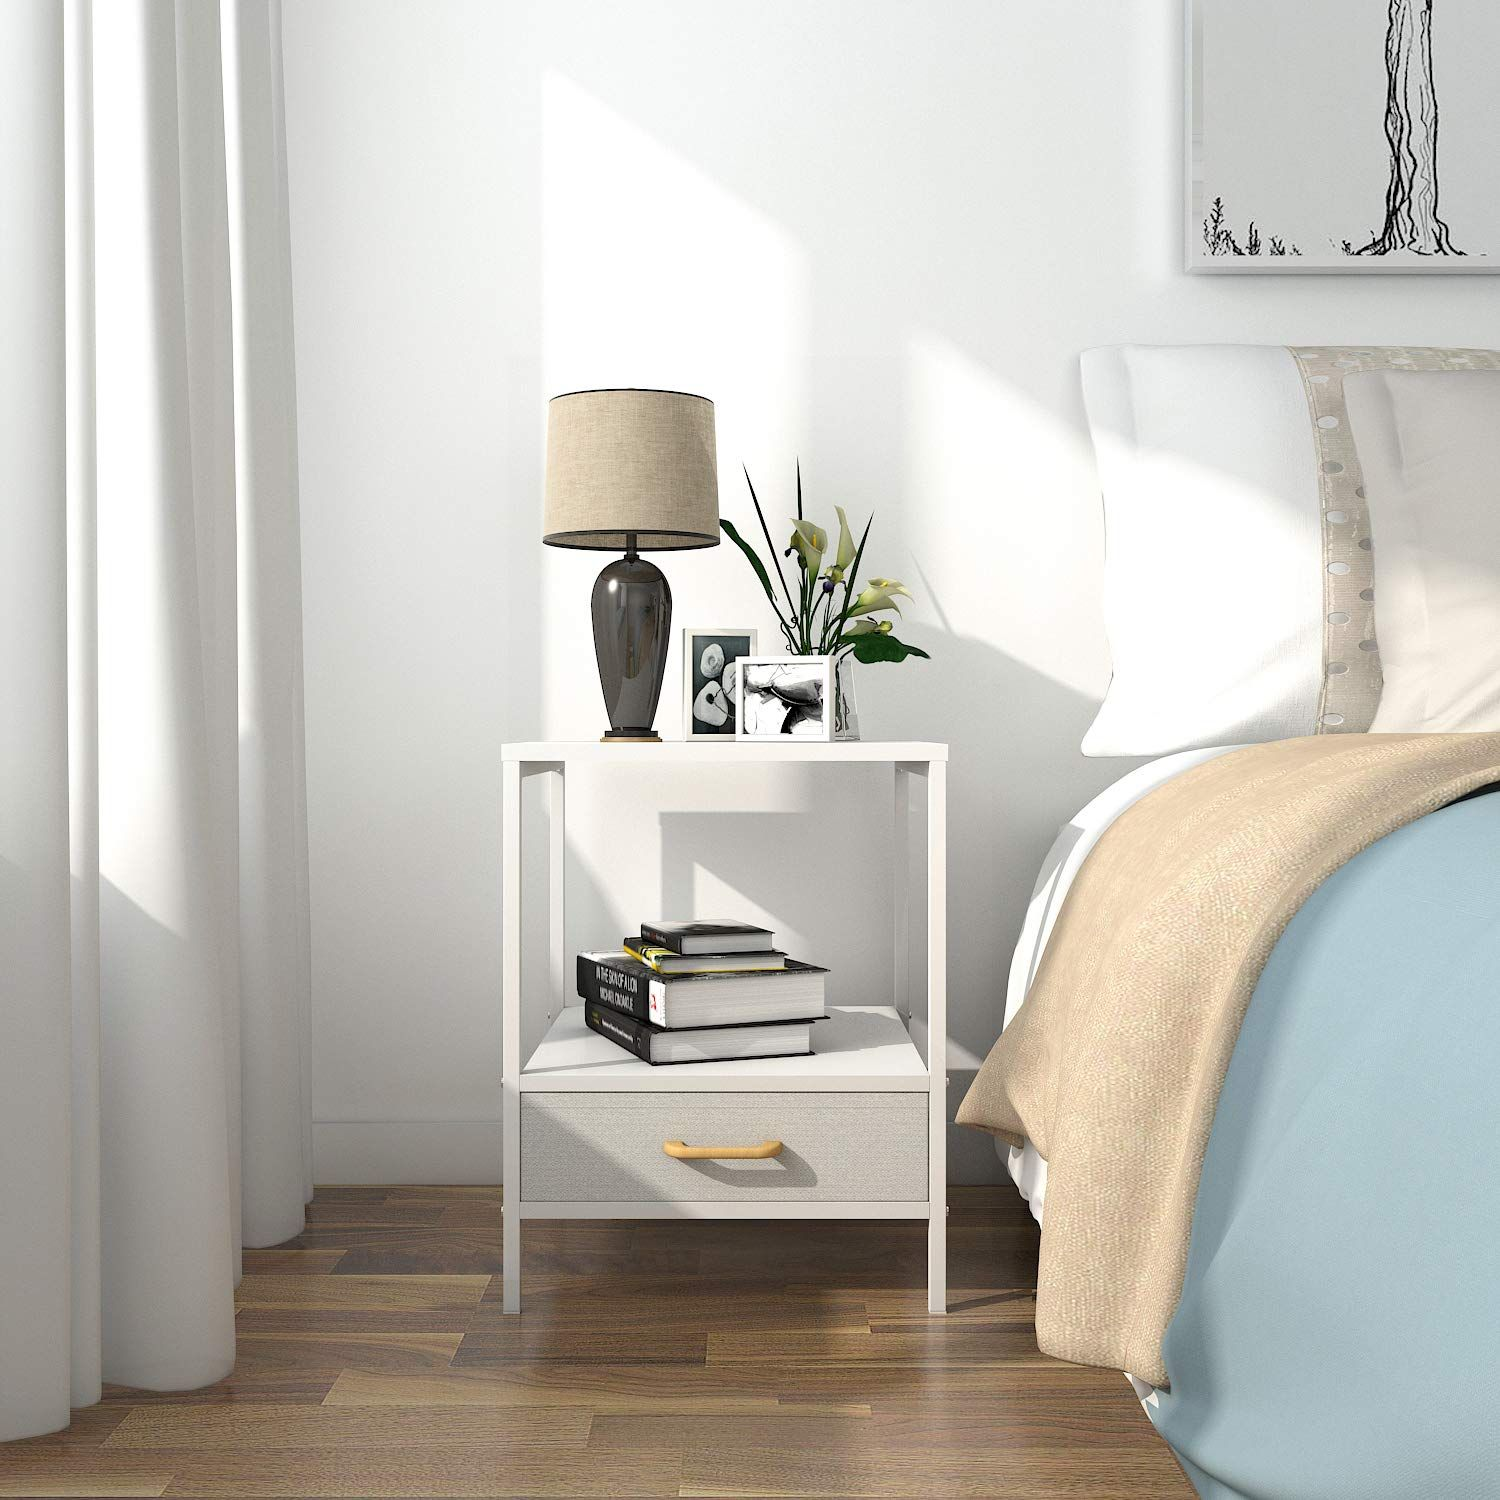 Lifewit Small Nightstand Bedside Table End Table with